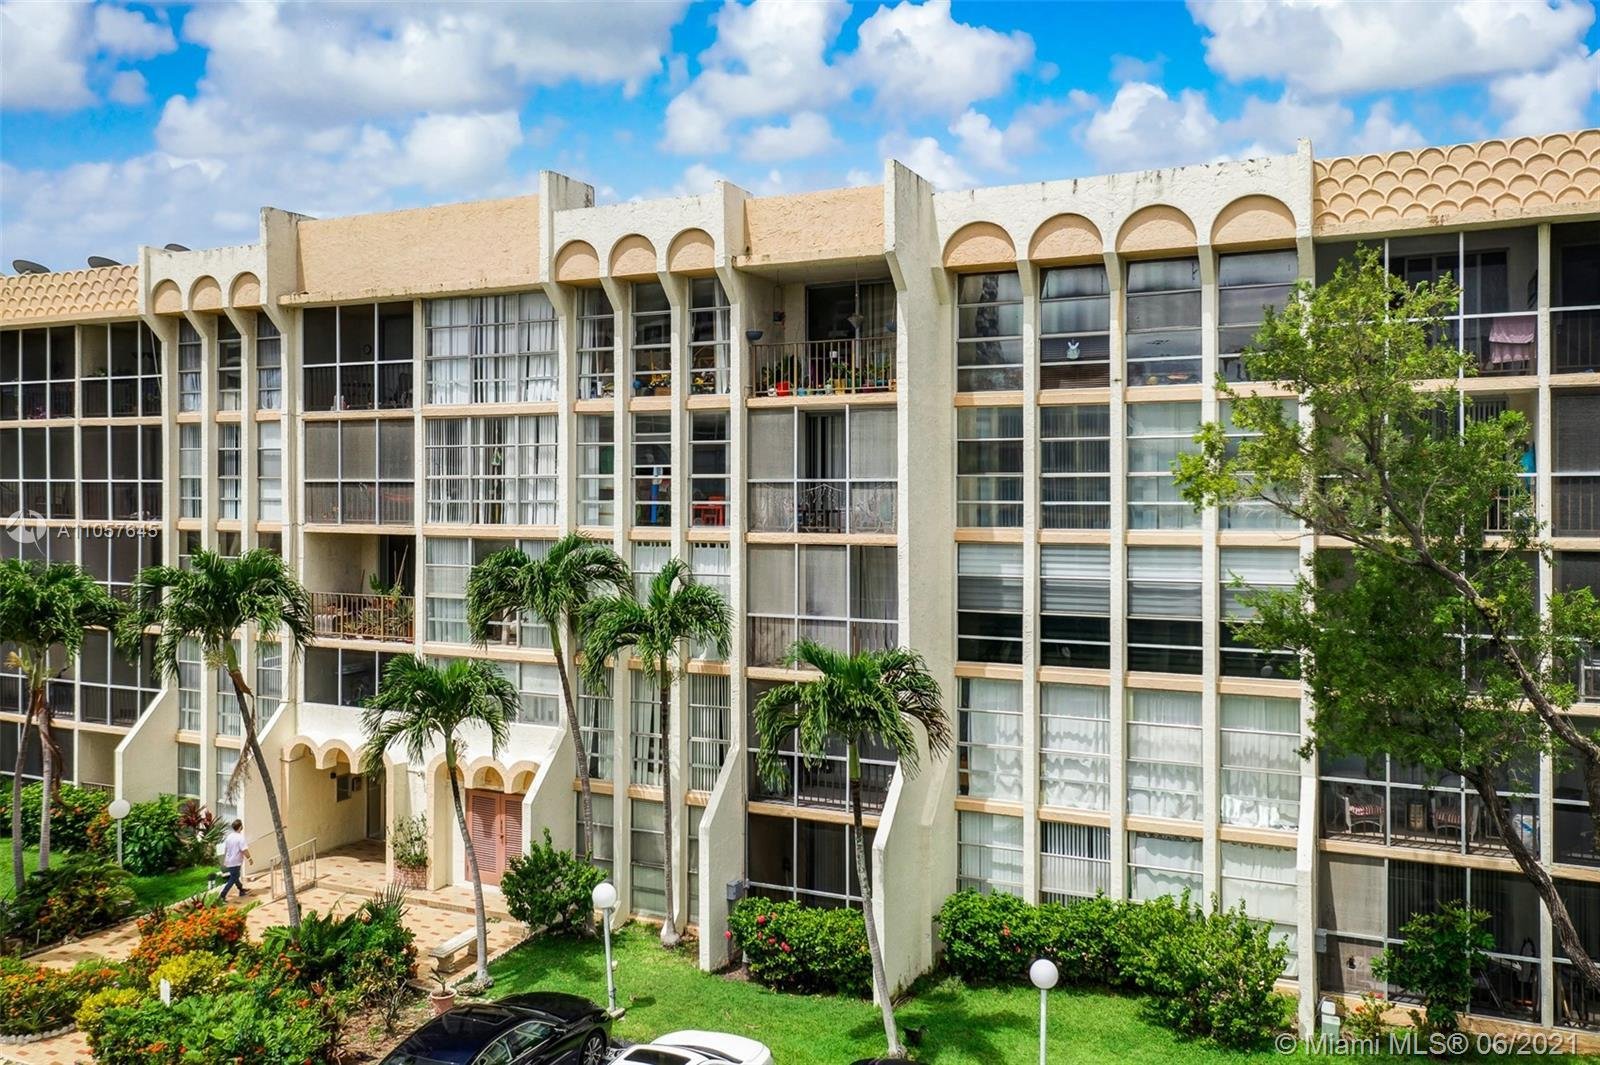 Enjoy the relaxing canal view from this spacious condo at DeSoto Park in Hallandale.  Large 2/2 with